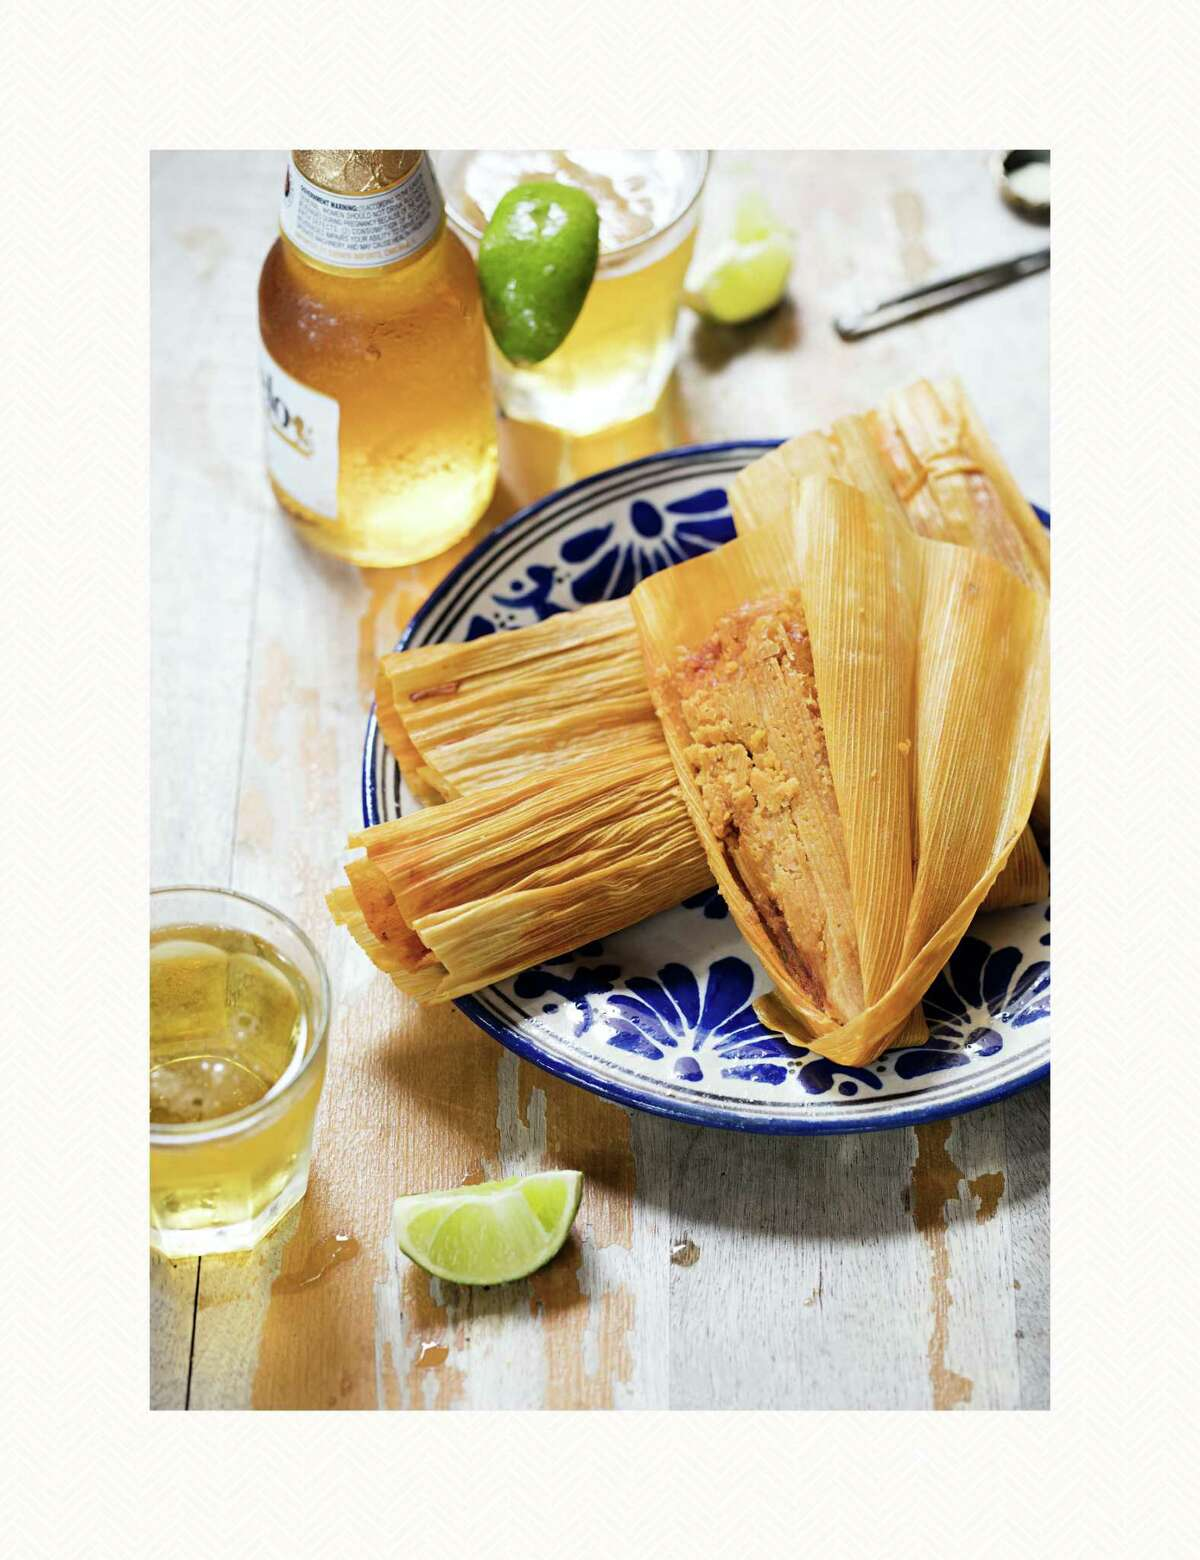 """Chicken Tamales from Houston chef Sylvia Casares is a recipe included in """"America the Great Cookbook"""" edited by Joe Yonan (Weldon Owen, $40)."""